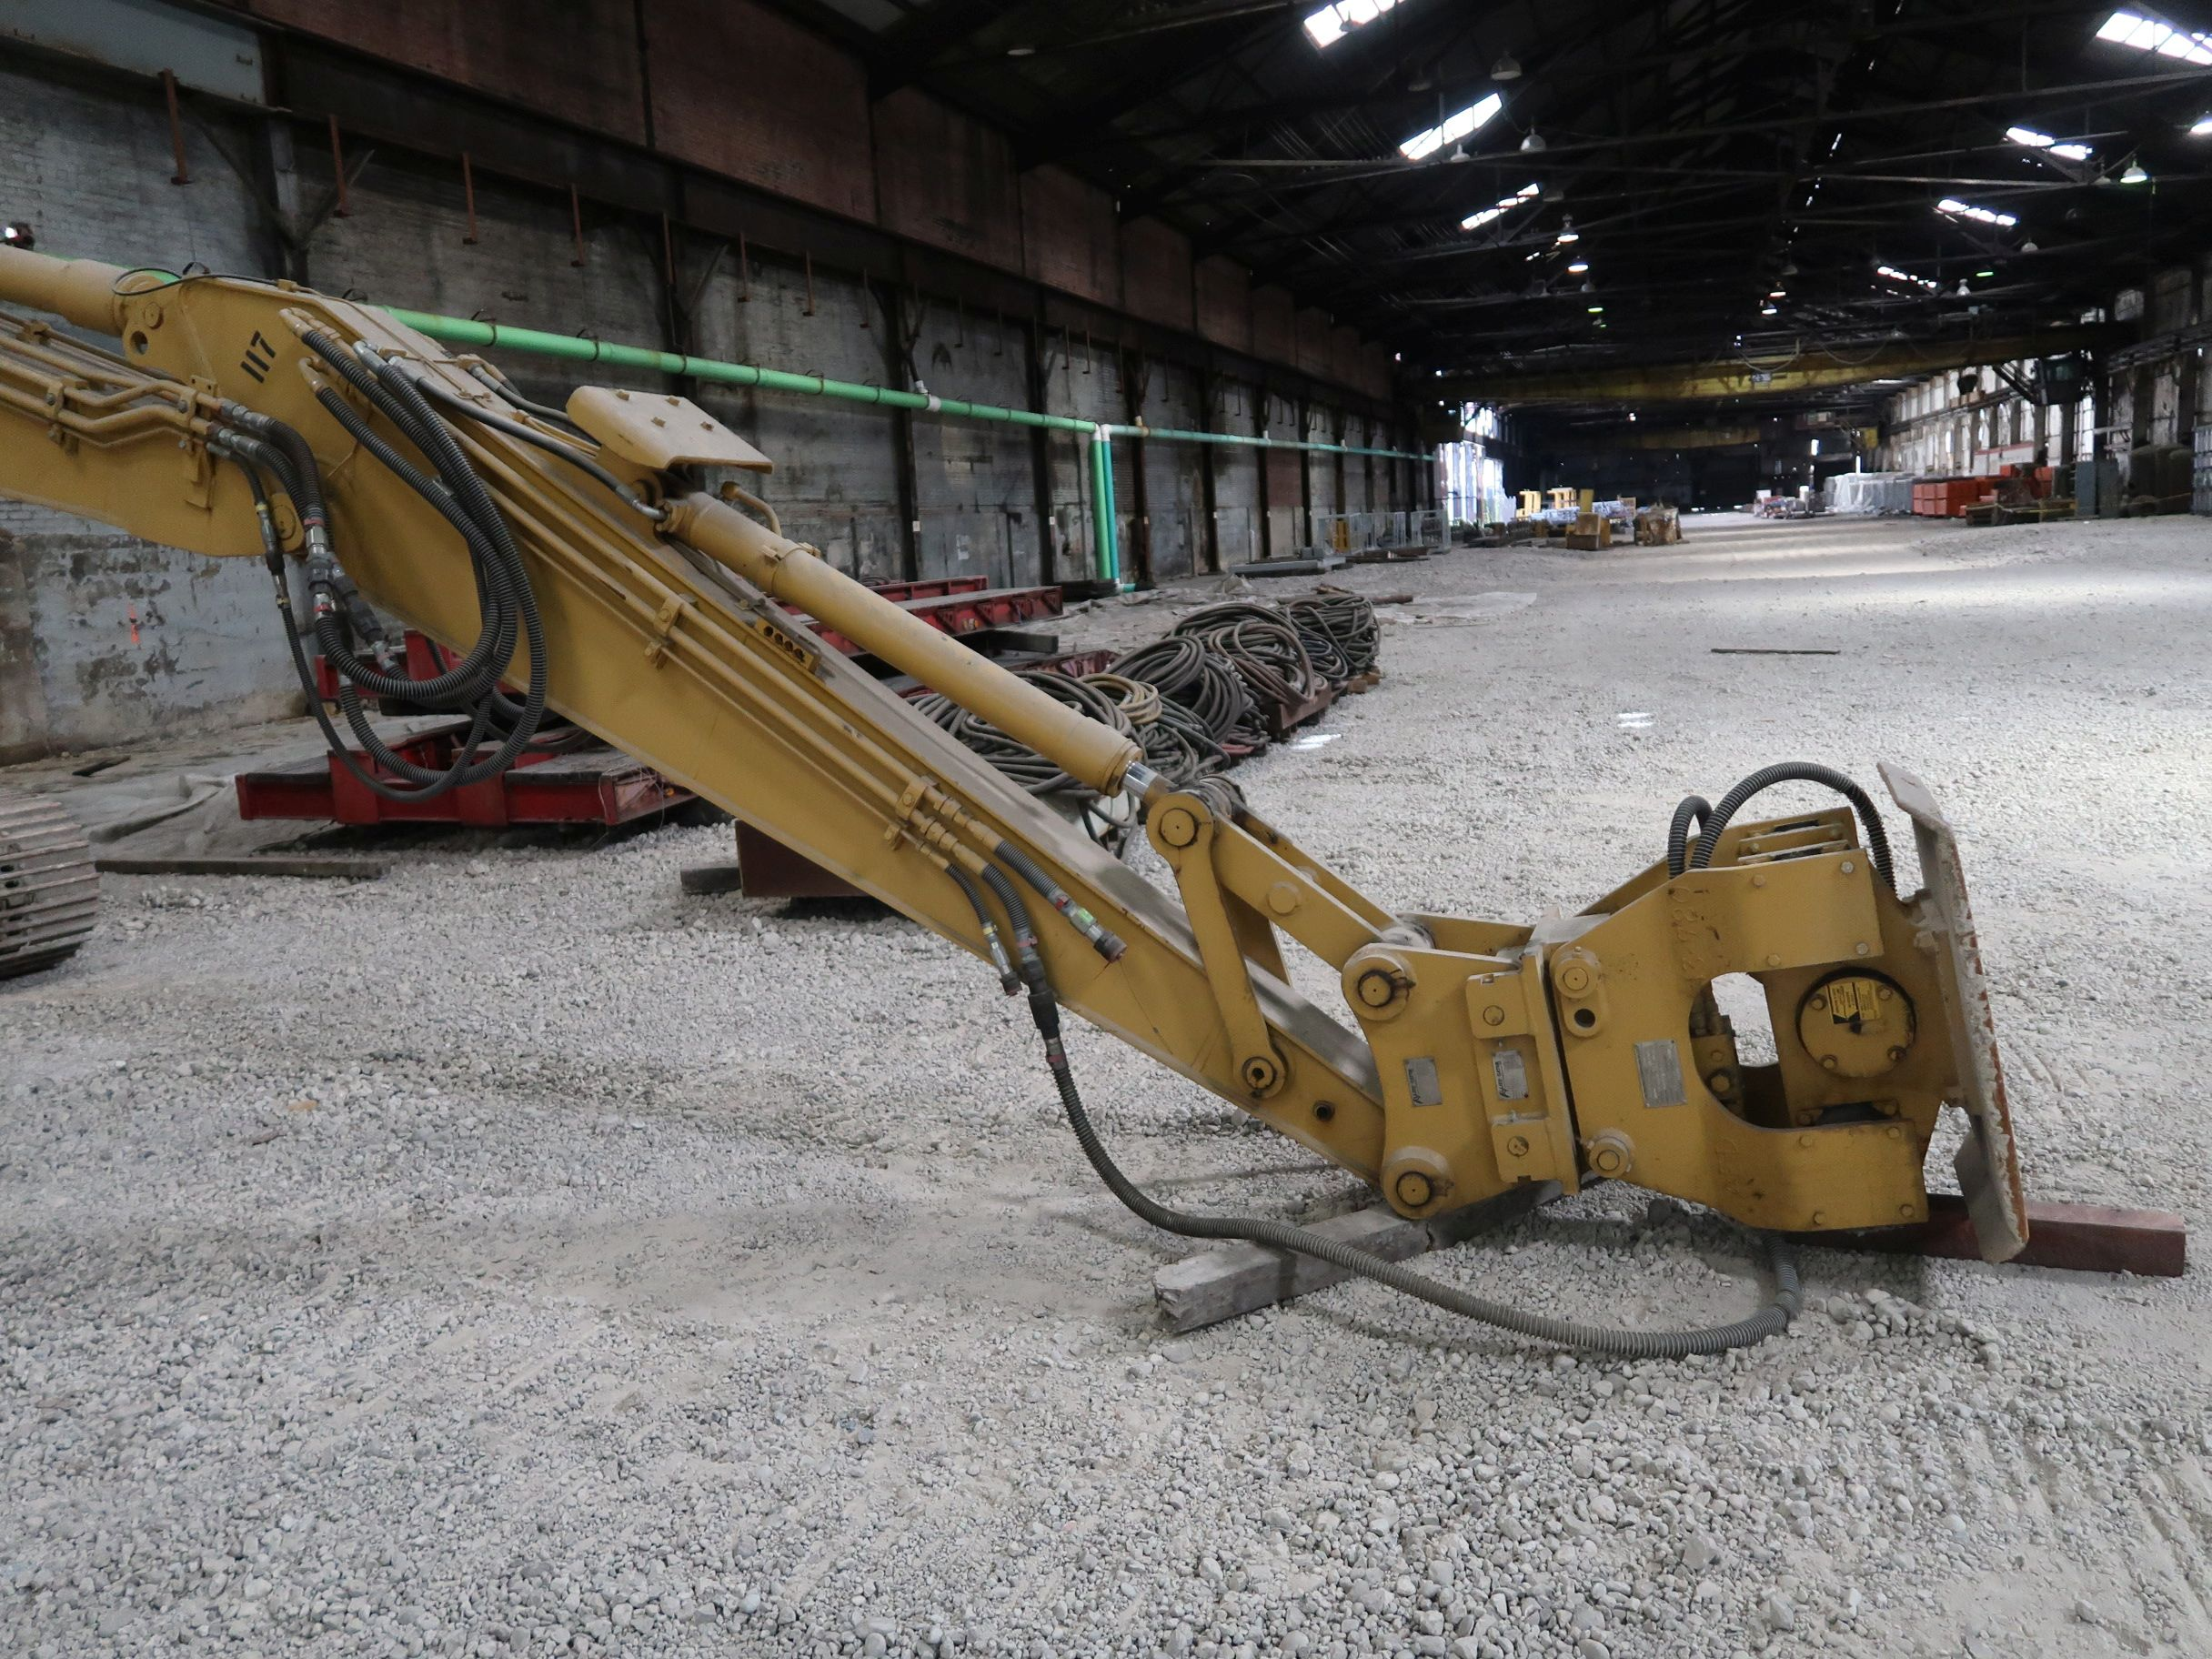 Lot 1034 - 24' WIDE HYDRAULIC DITCH COMPACTOR ATTACHMENT